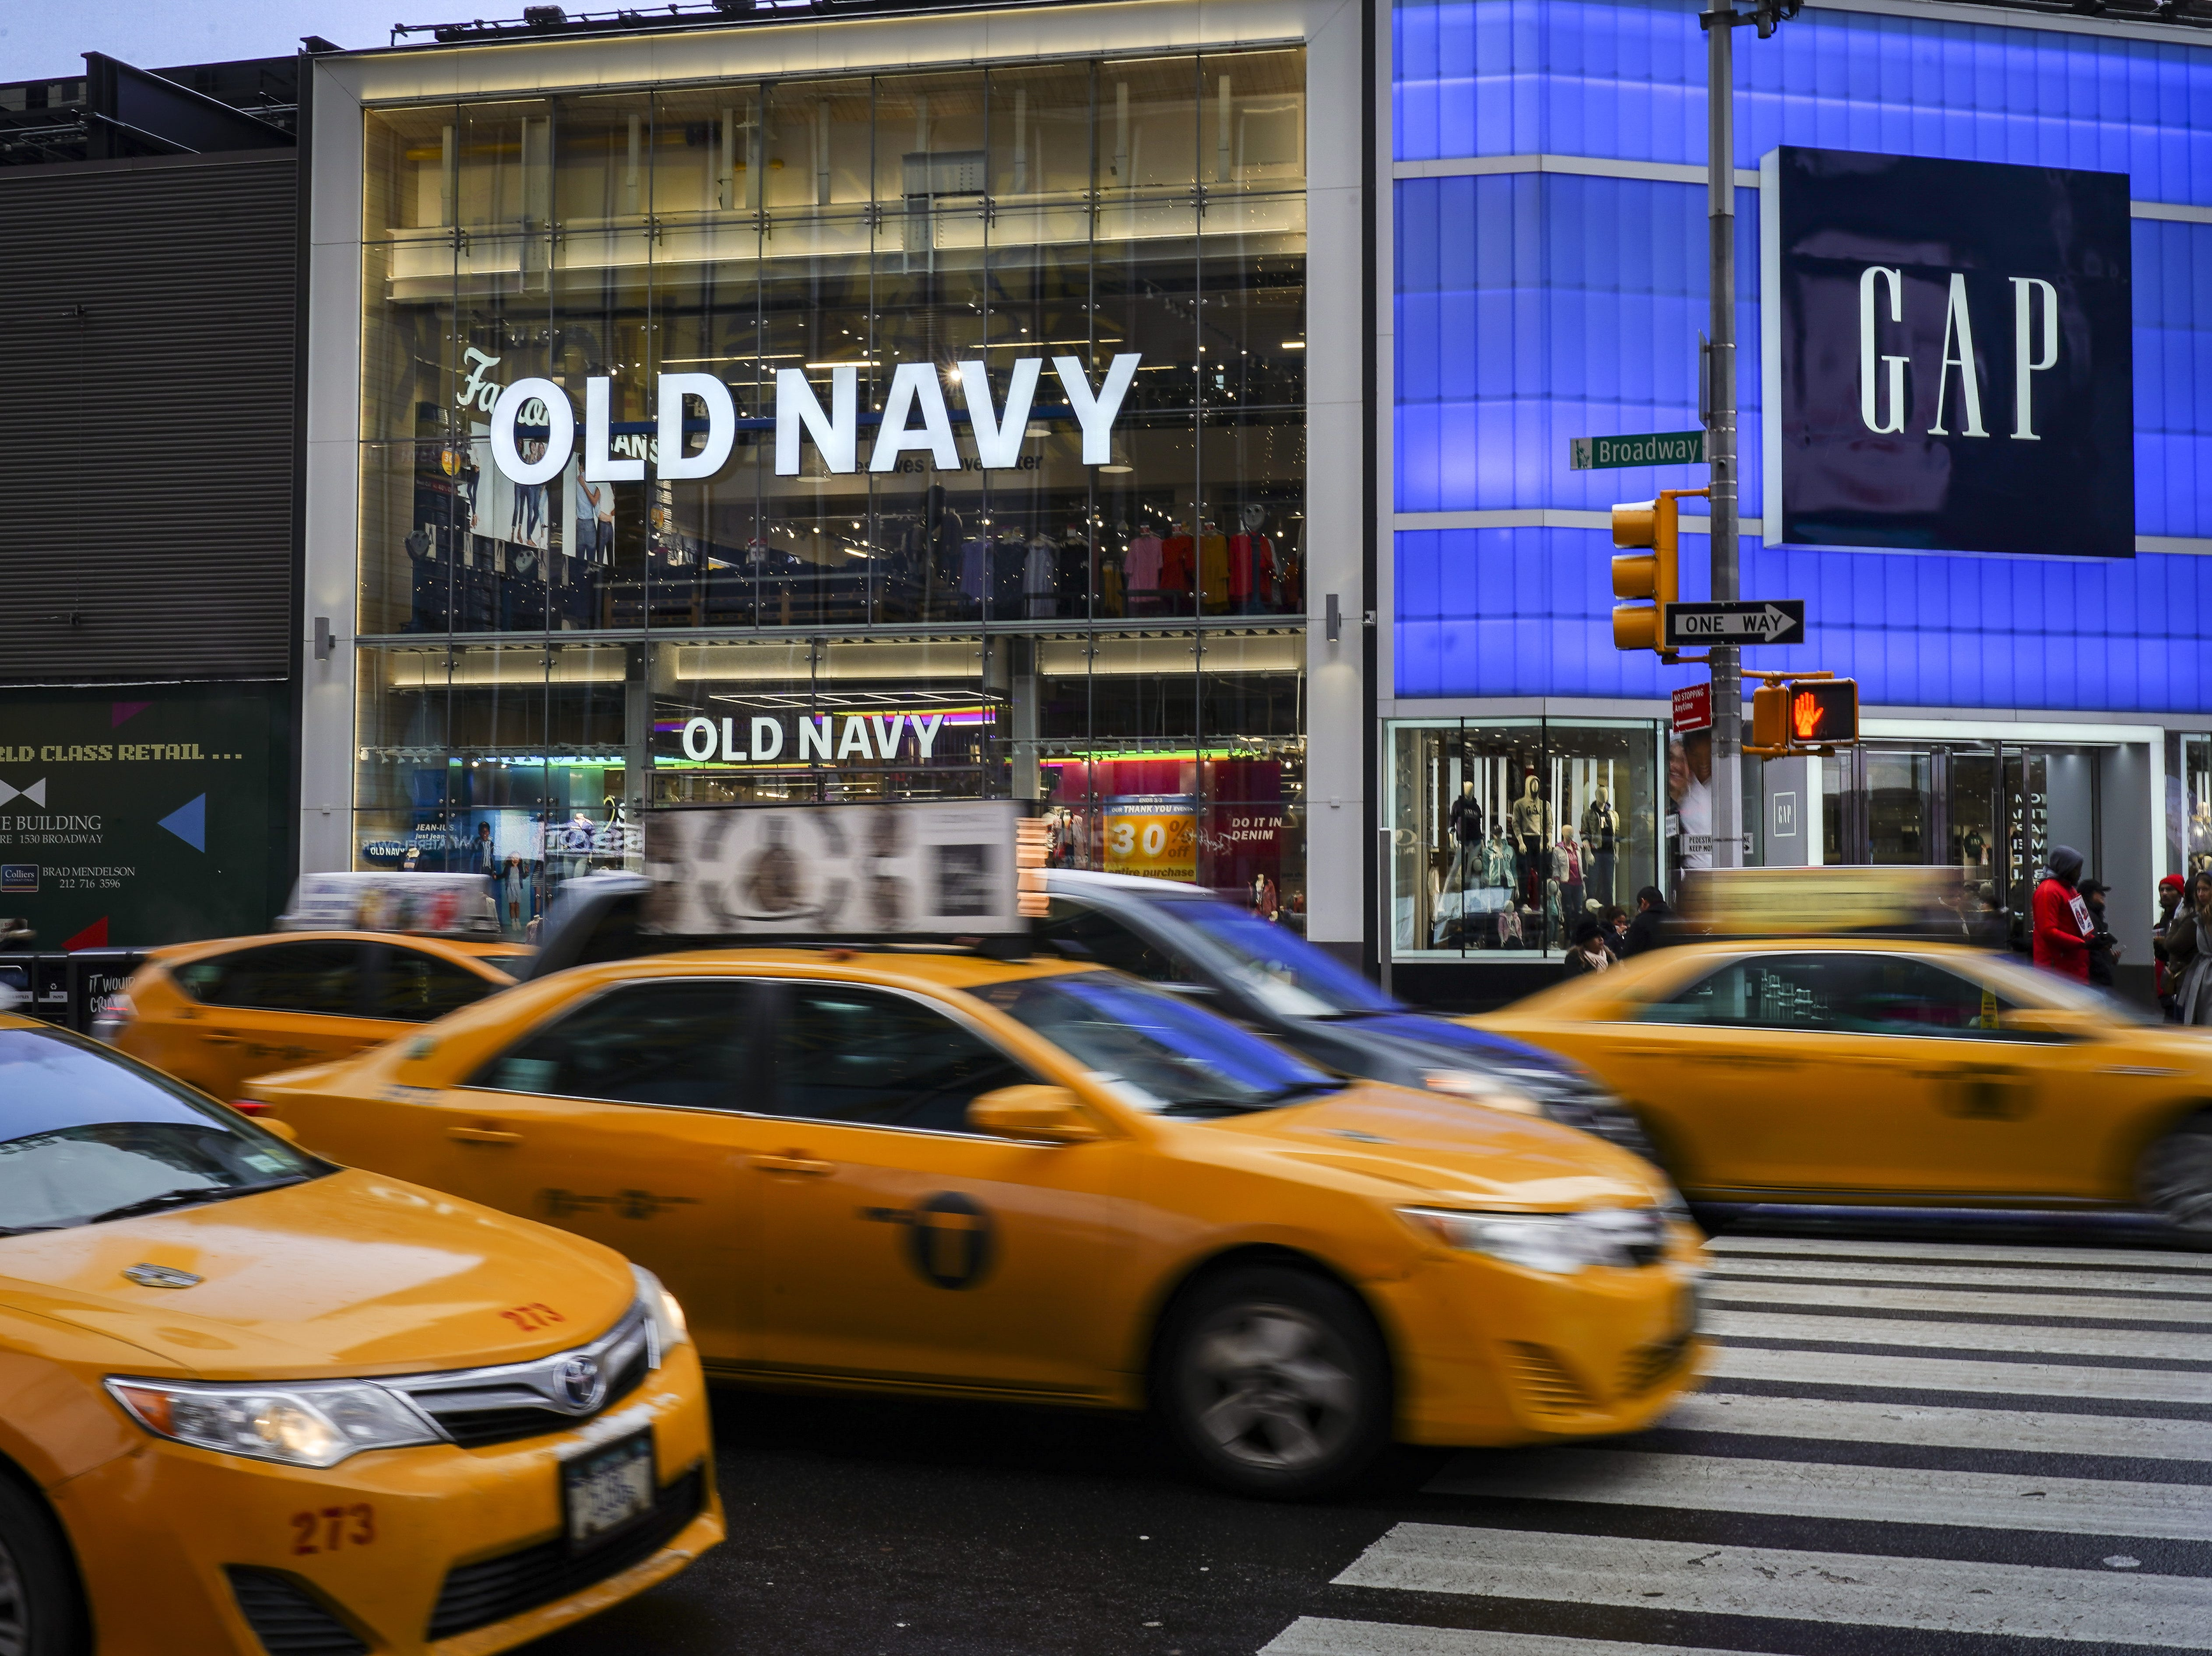 NEW YORK, NY - MARCH 01: Traffic passes by an Old Navy and GAP stores in Times Square, March 1, 2019 in New York City. On Thursday, Gap Inc. announced plans to separate into two publicly traded companies, spinning off Old Navy into a separate firm as it closes about 230 Gap stores over the next two years. According to Gap Inc., Old Navy will become its own company, and the other company, which has not been named yet, will consist of the Gap brand, Athleta, Banana Republic, Intermix and Hill City. (Photo by Drew Angerer/Getty Images) ORG XMIT: 775307132 ORIG FILE ID: 1128300951